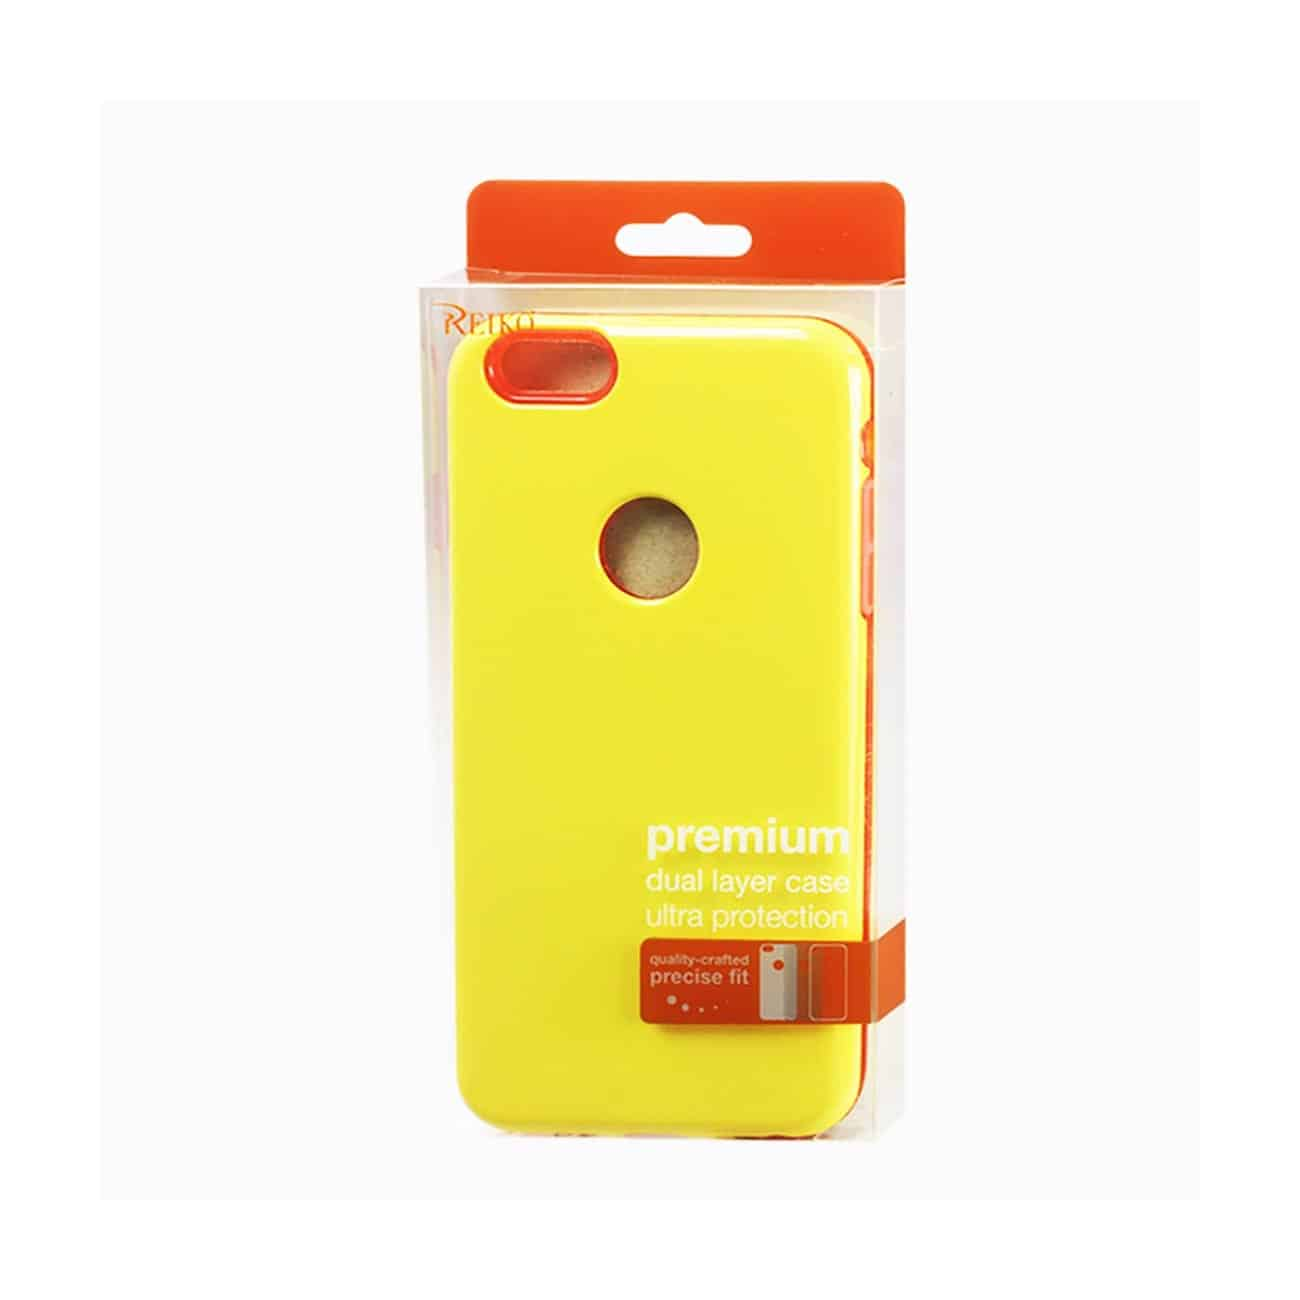 IPHONE 6 SLIM ARMOR CANDY SHIELD CASE IN YELLOW